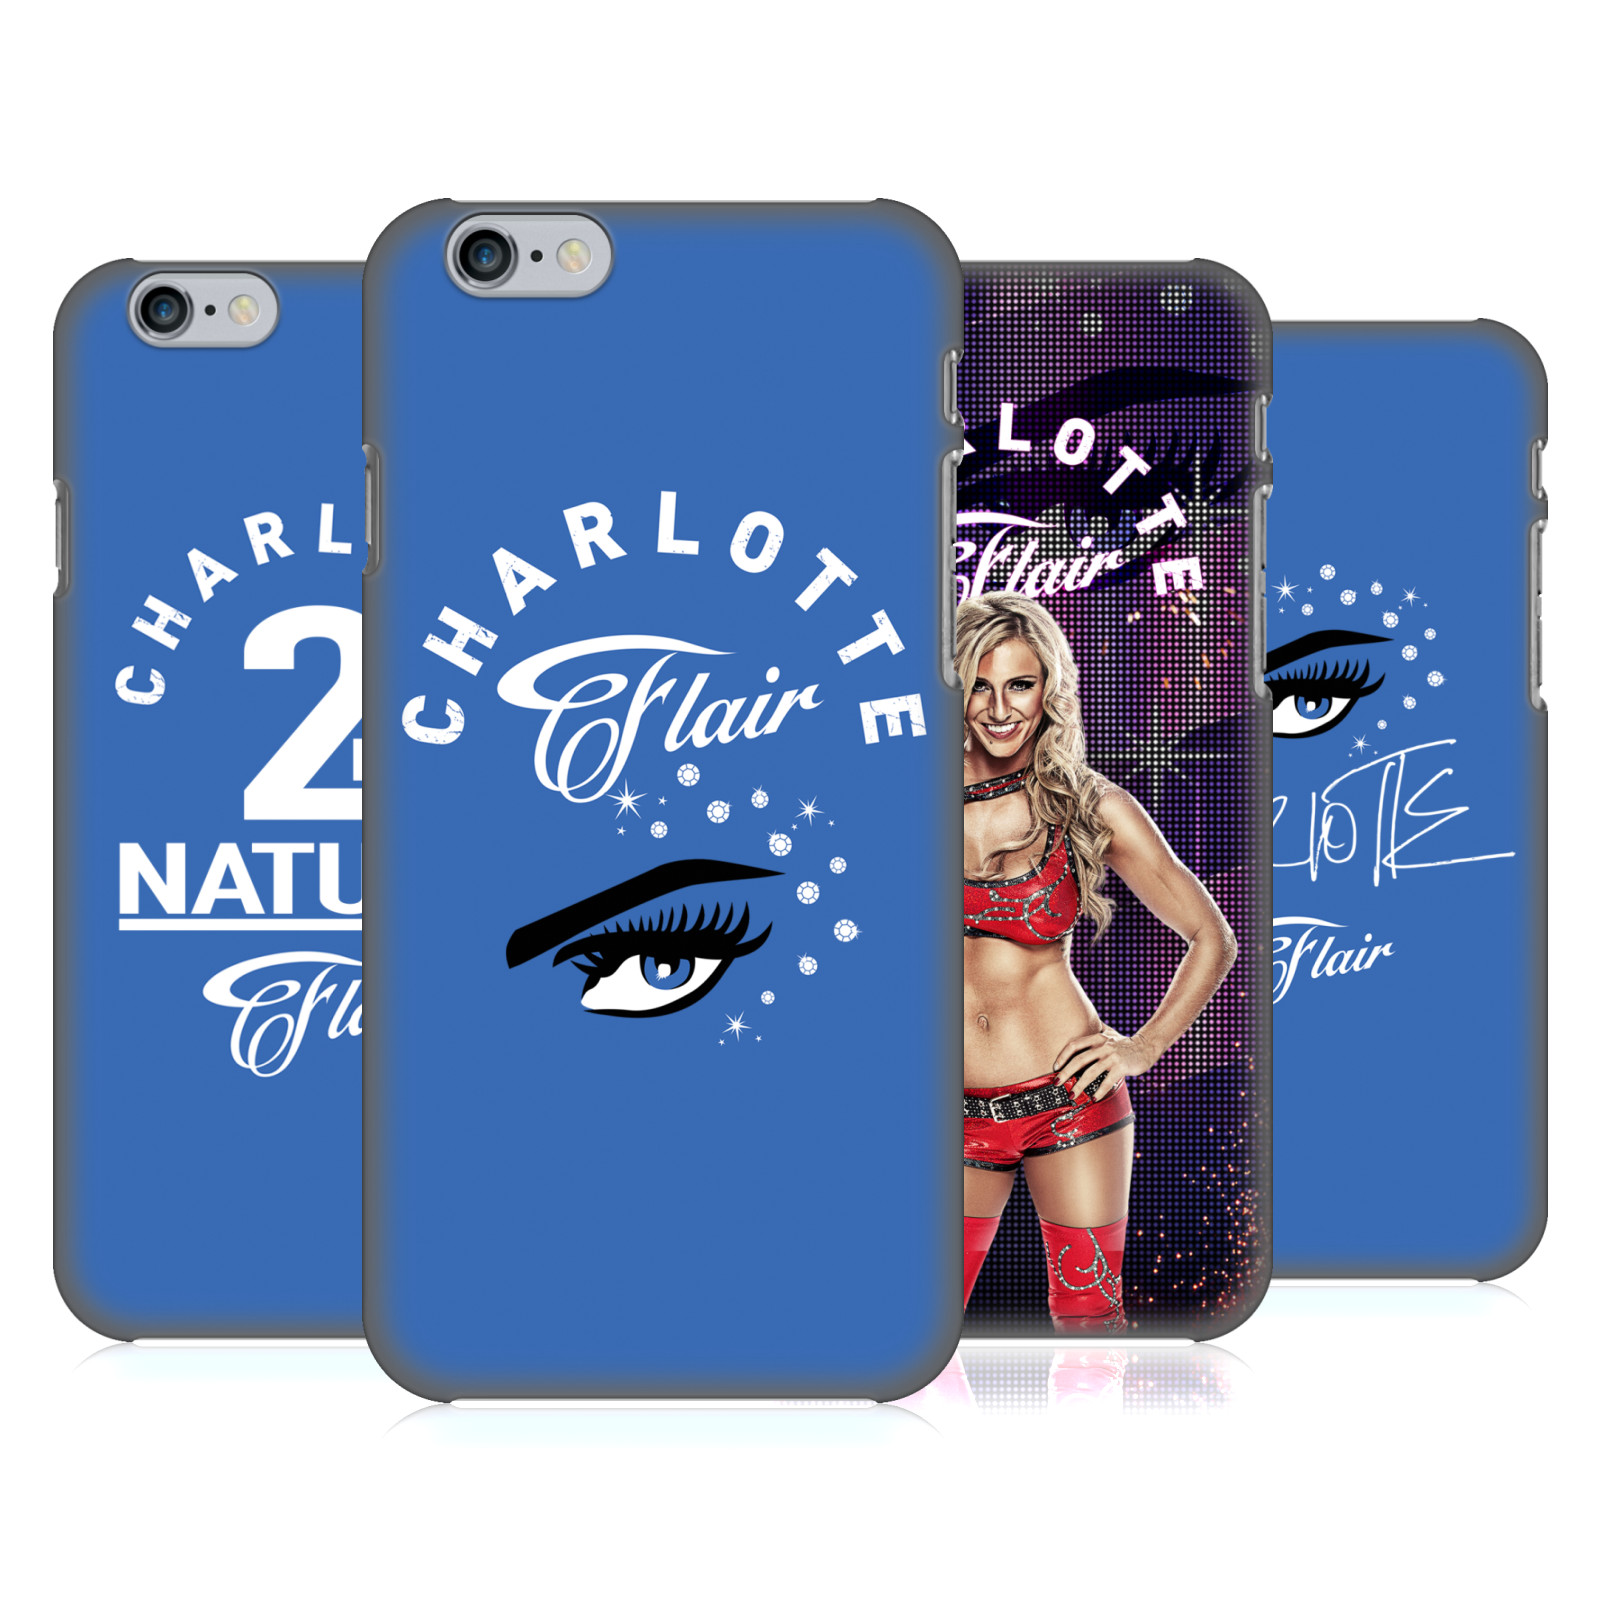 wwe phone case iphone 6